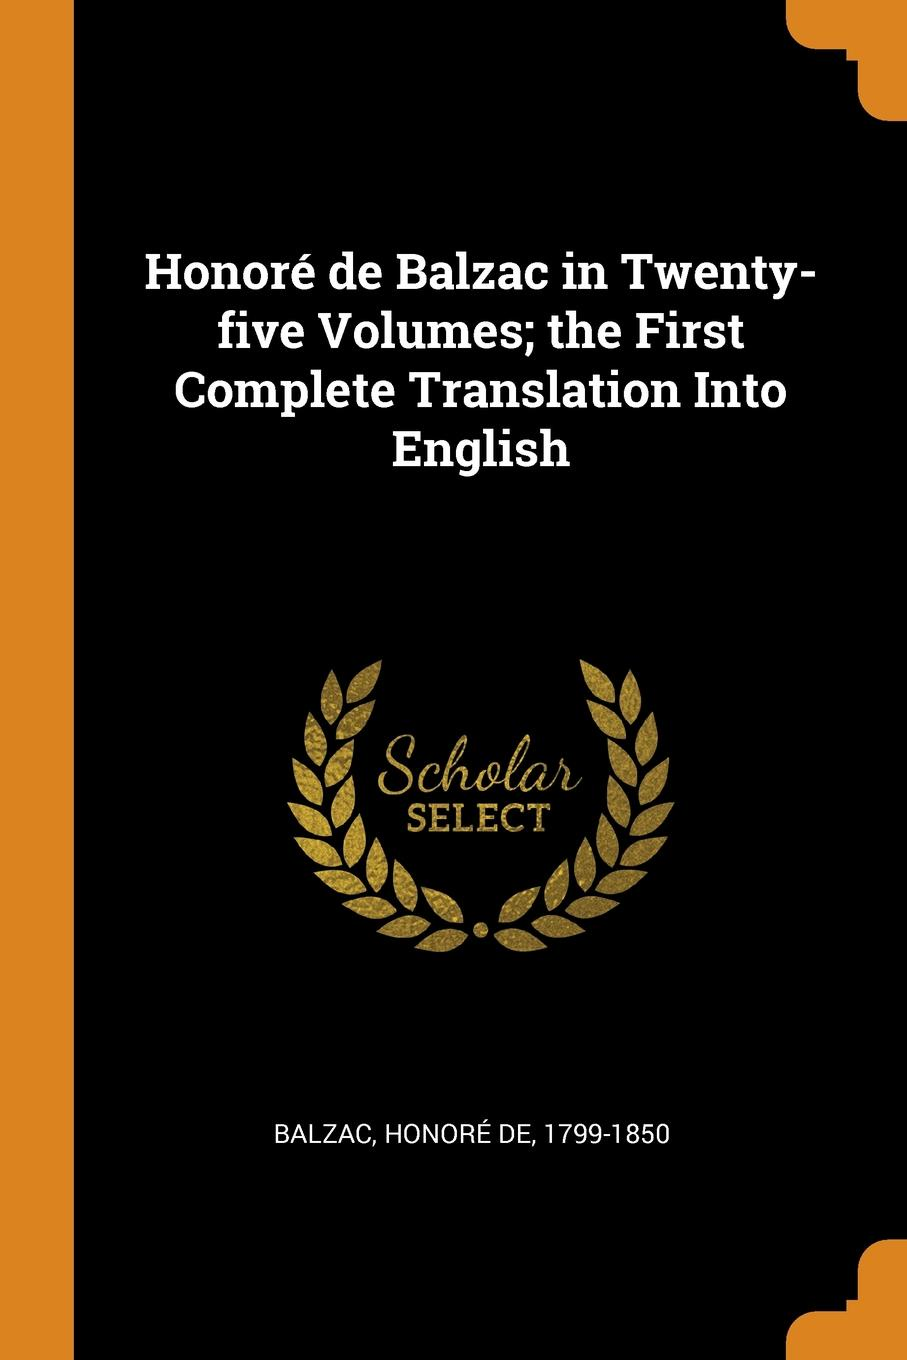 Honore de Balzac in Twenty-five Volumes; the First Complete Translation Into English